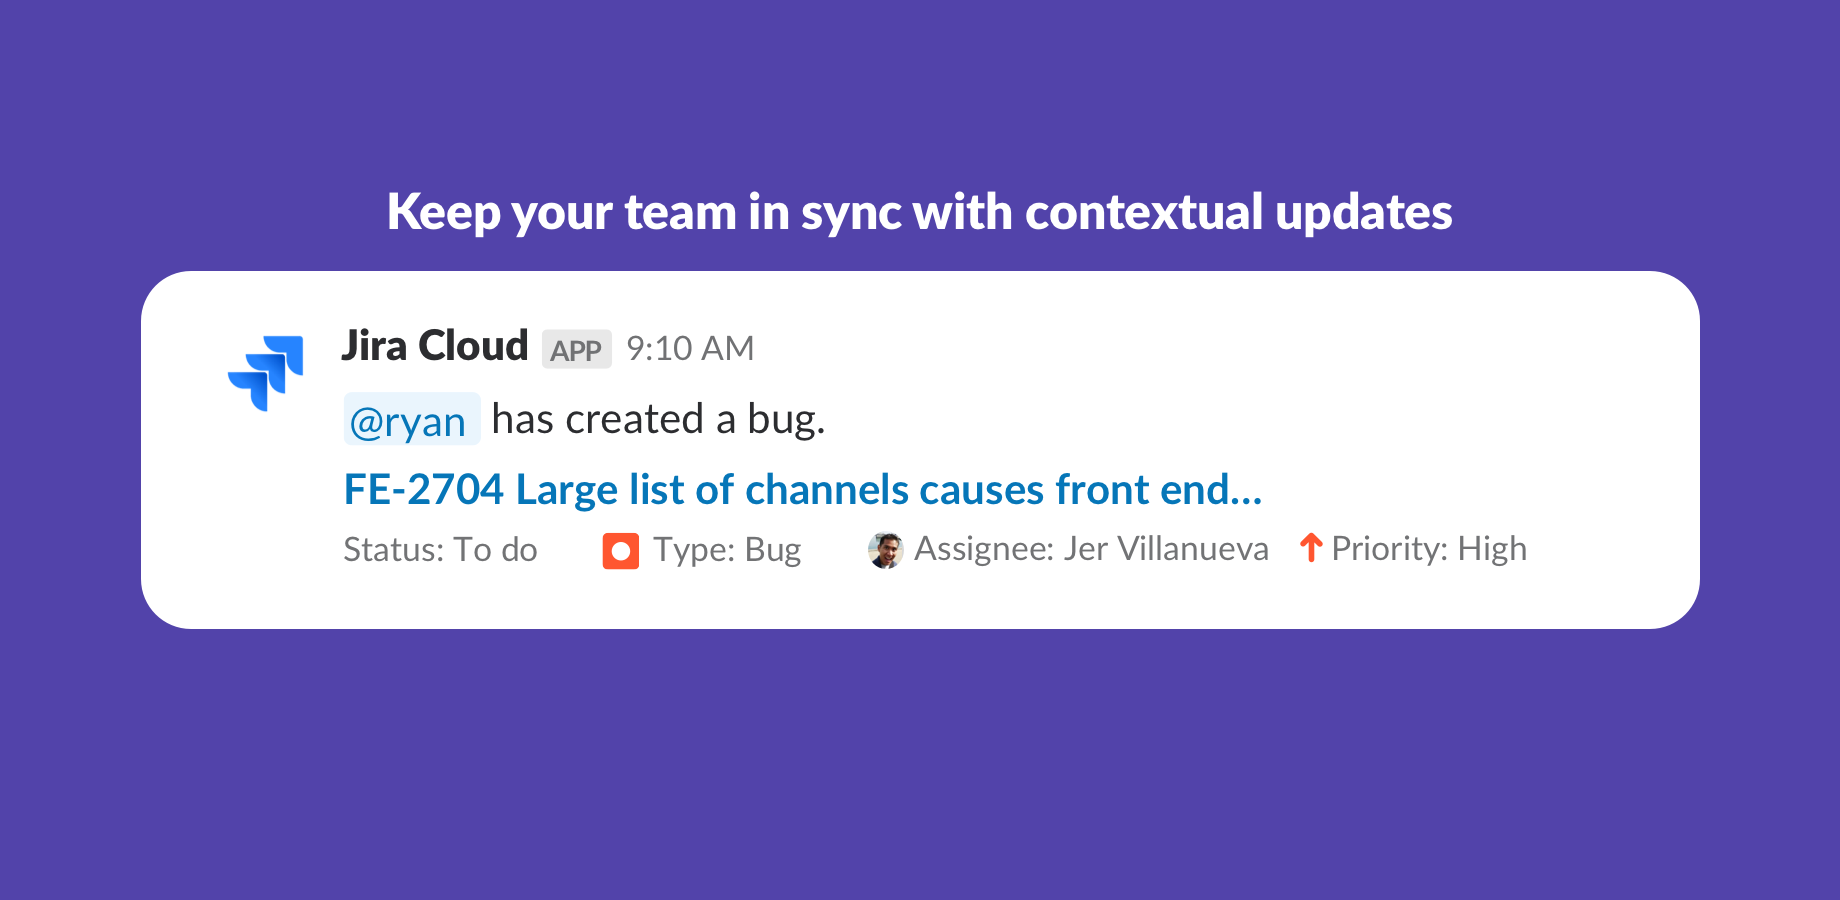 Jira notification with contextual update